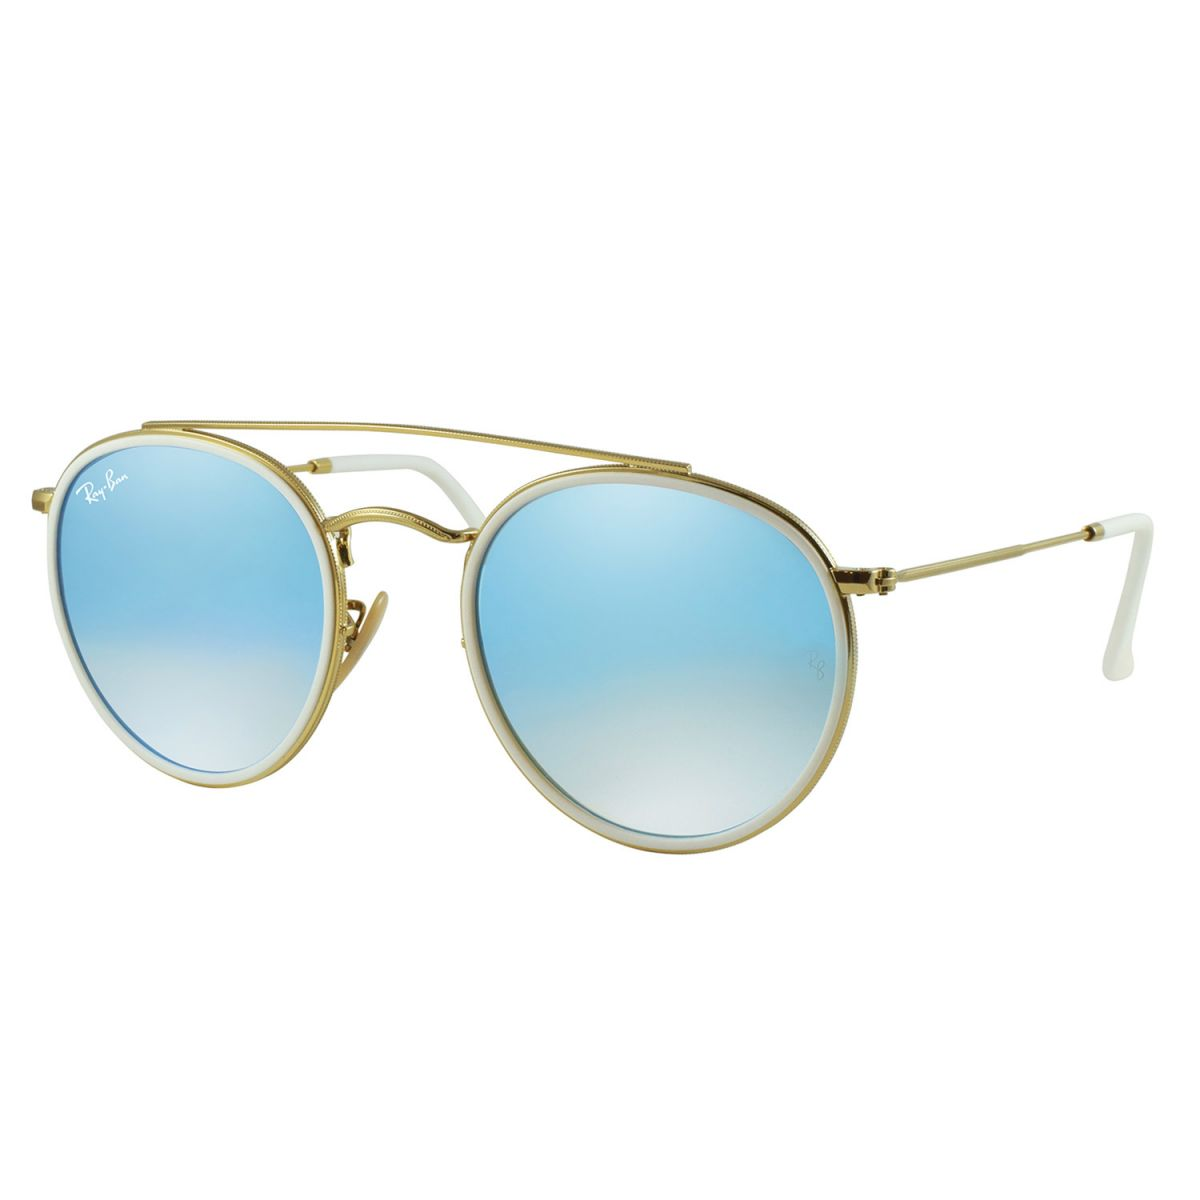 93f6d7391307c Óculos de Sol Ray-Ban Rb3647n 001 4O 51 Round Double Bridge Azul Degradê